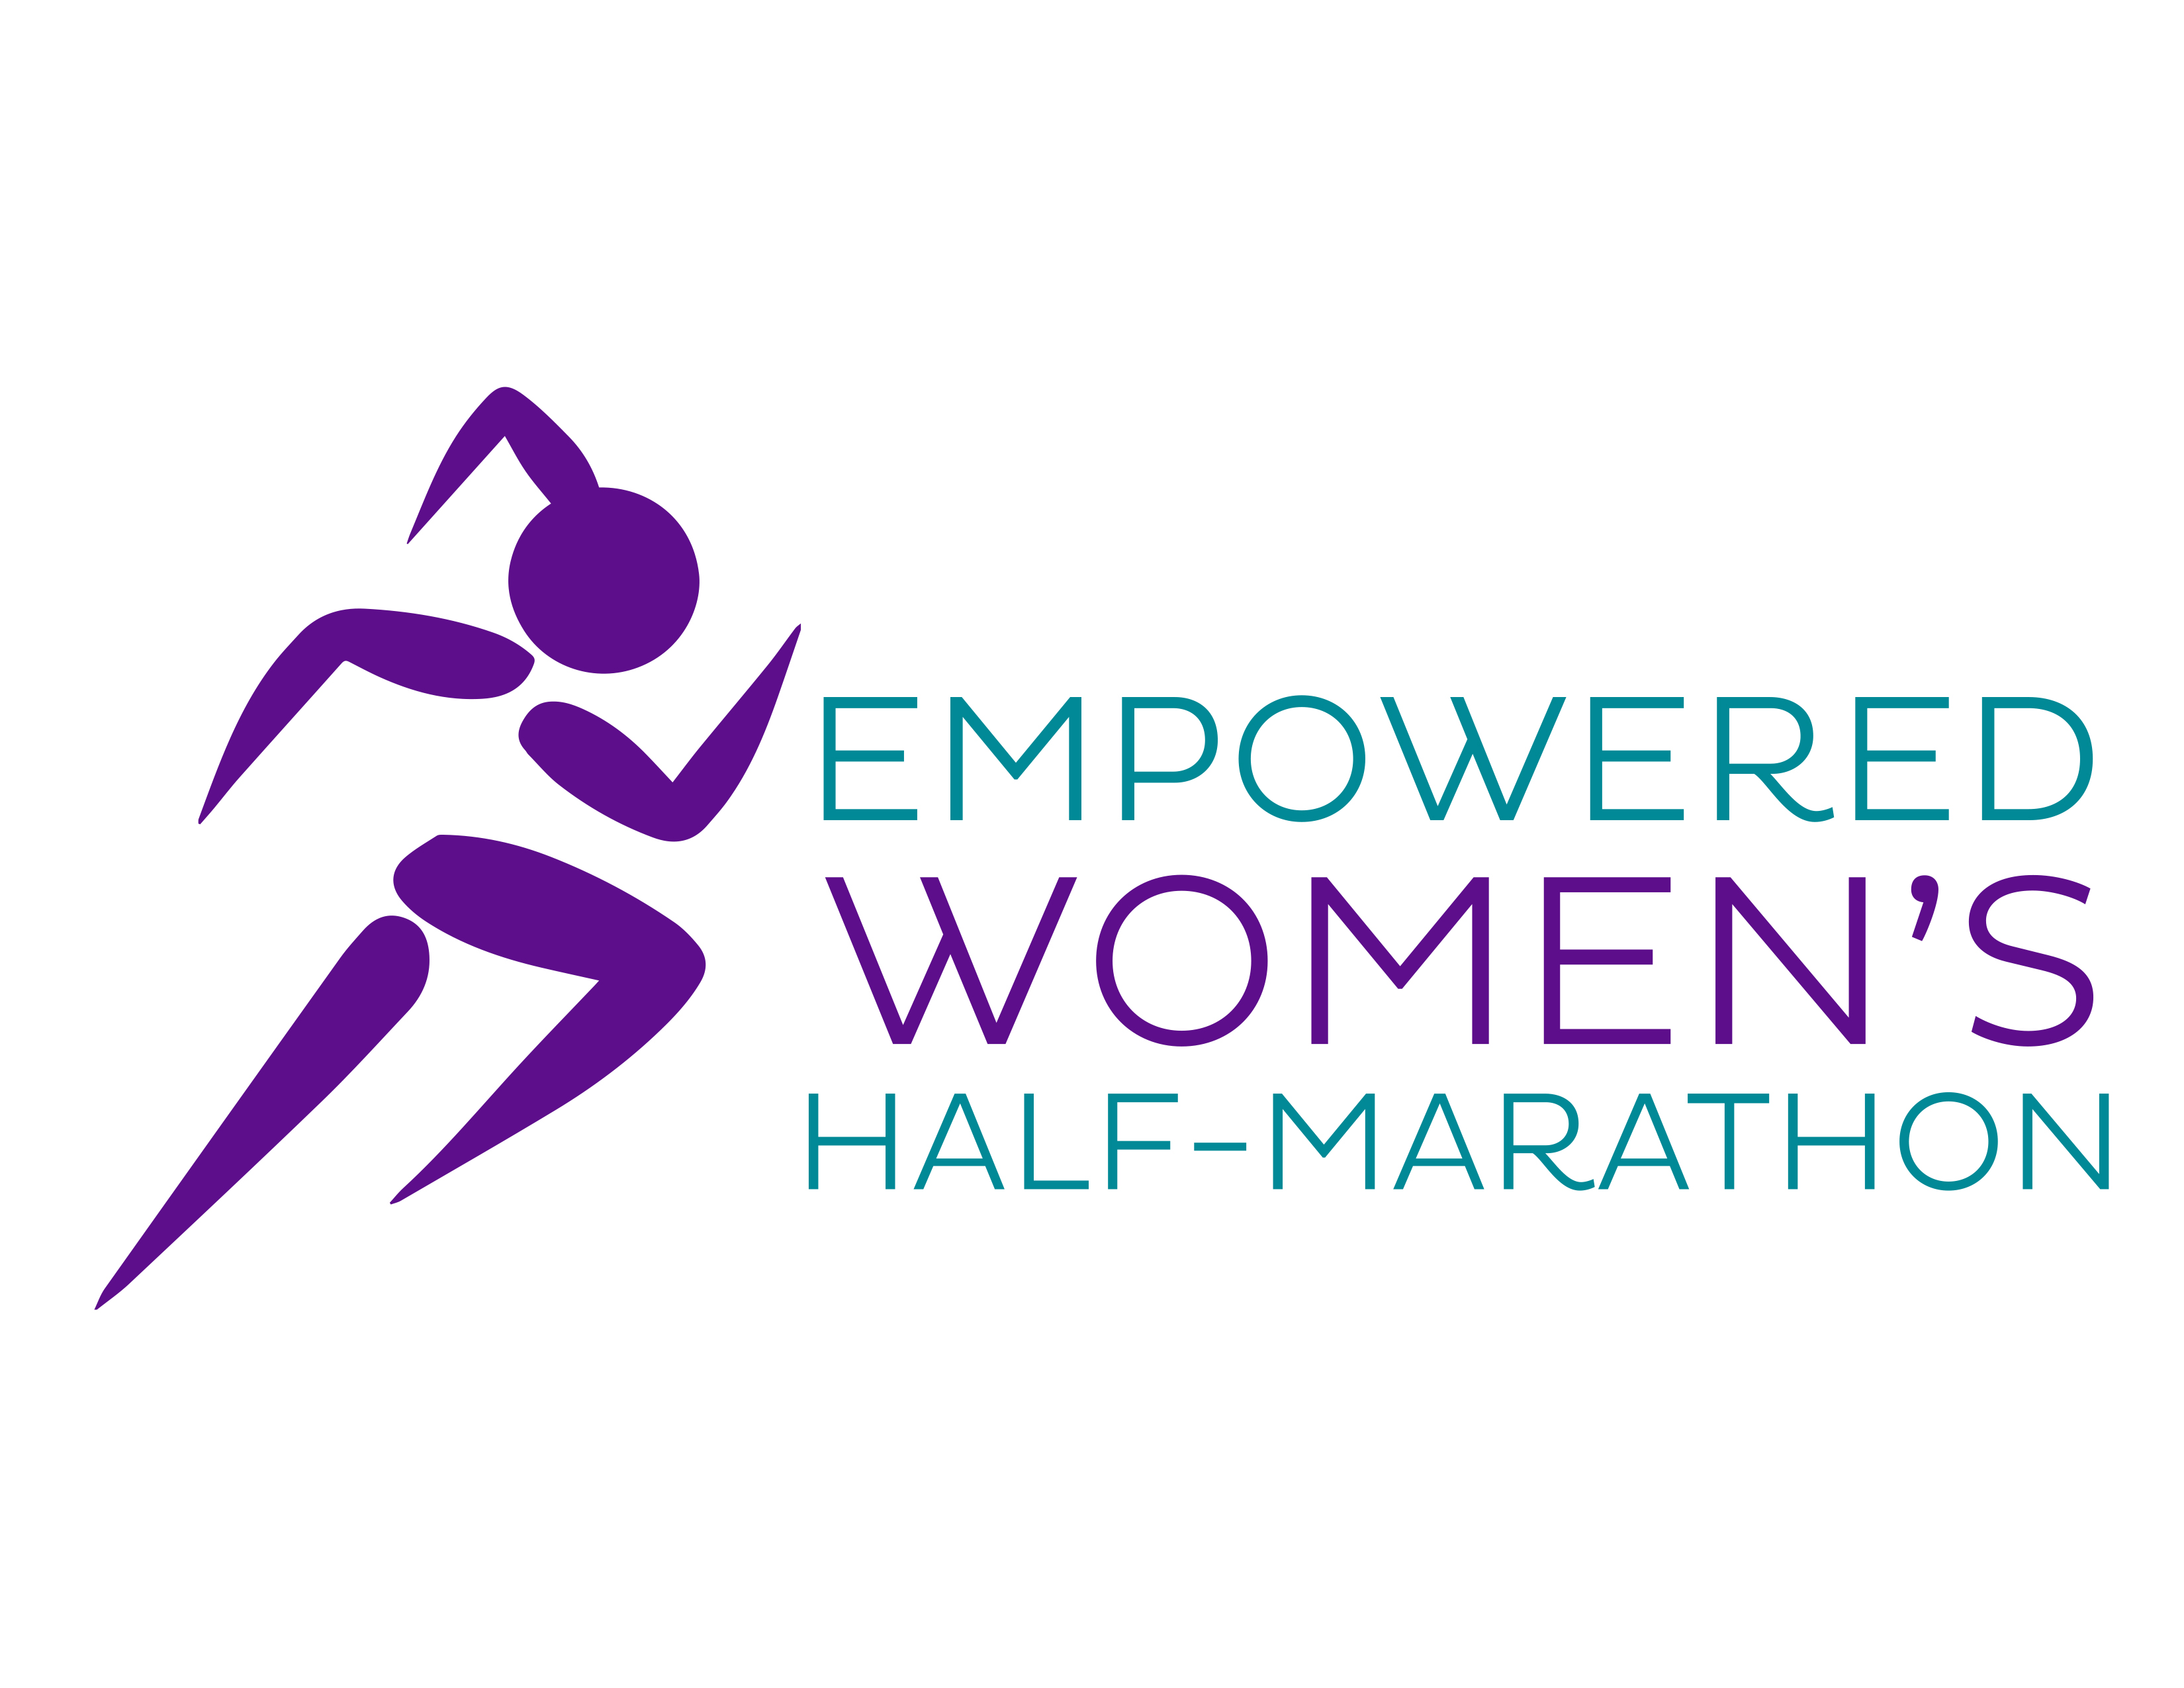 Empowered Women's Half-Marathhon